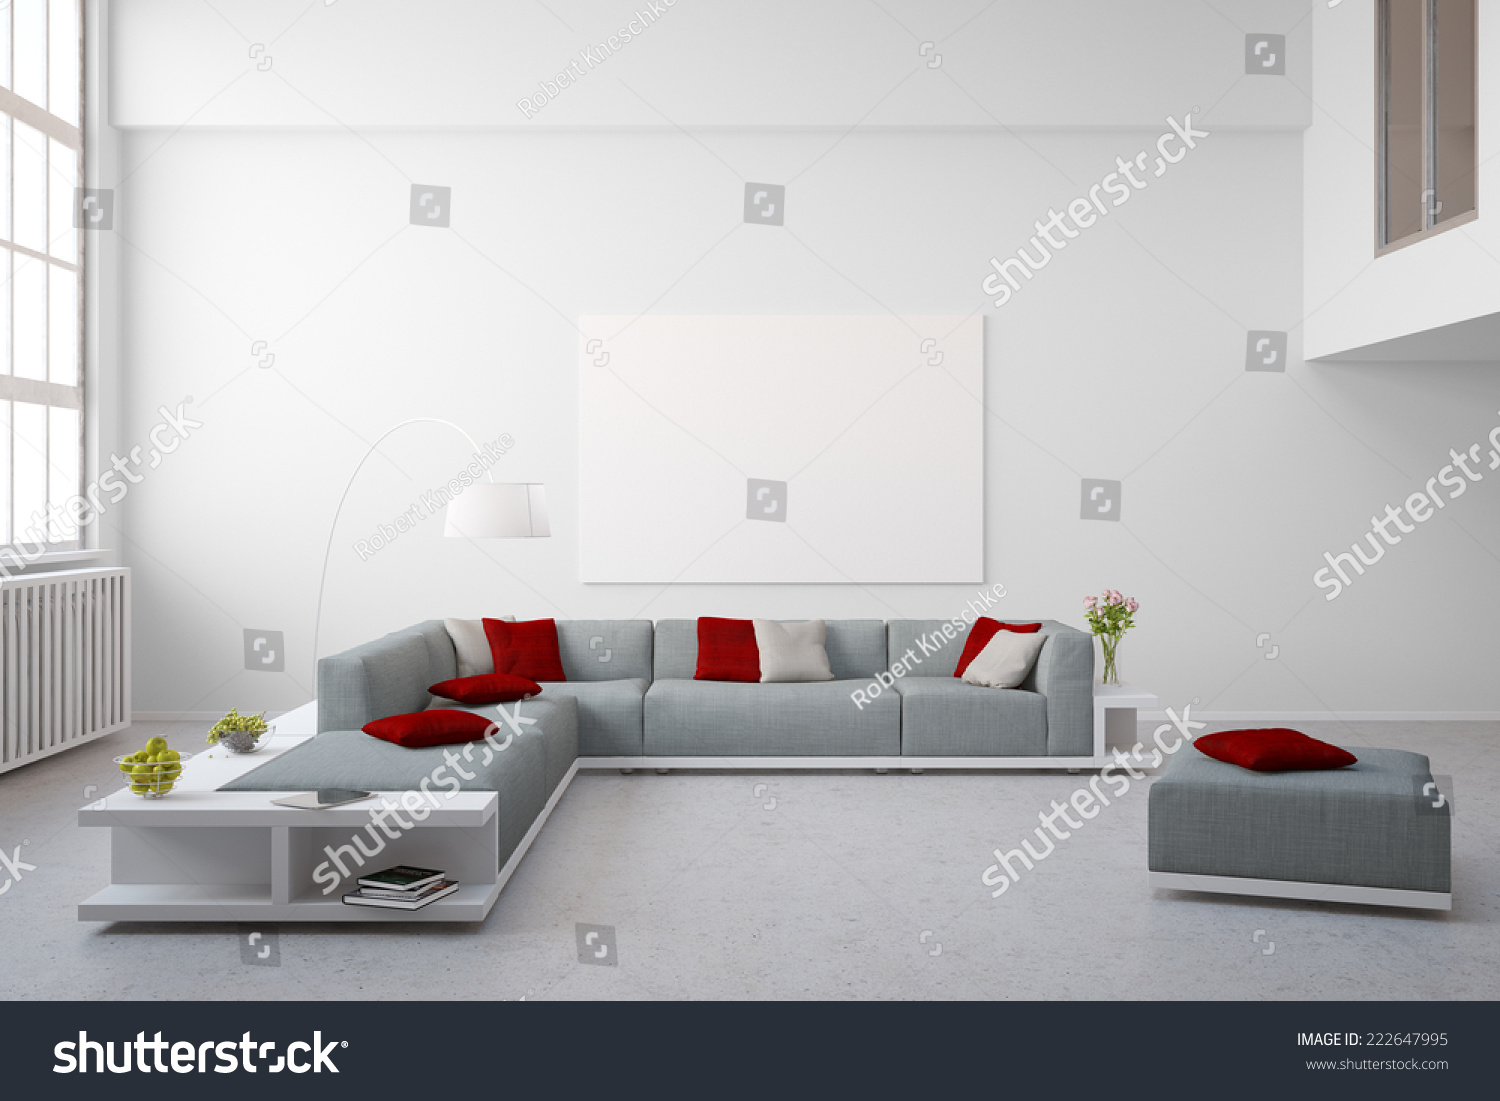 Big Couch Furniture Living Room Bright Stock Illustration 222647995 ...